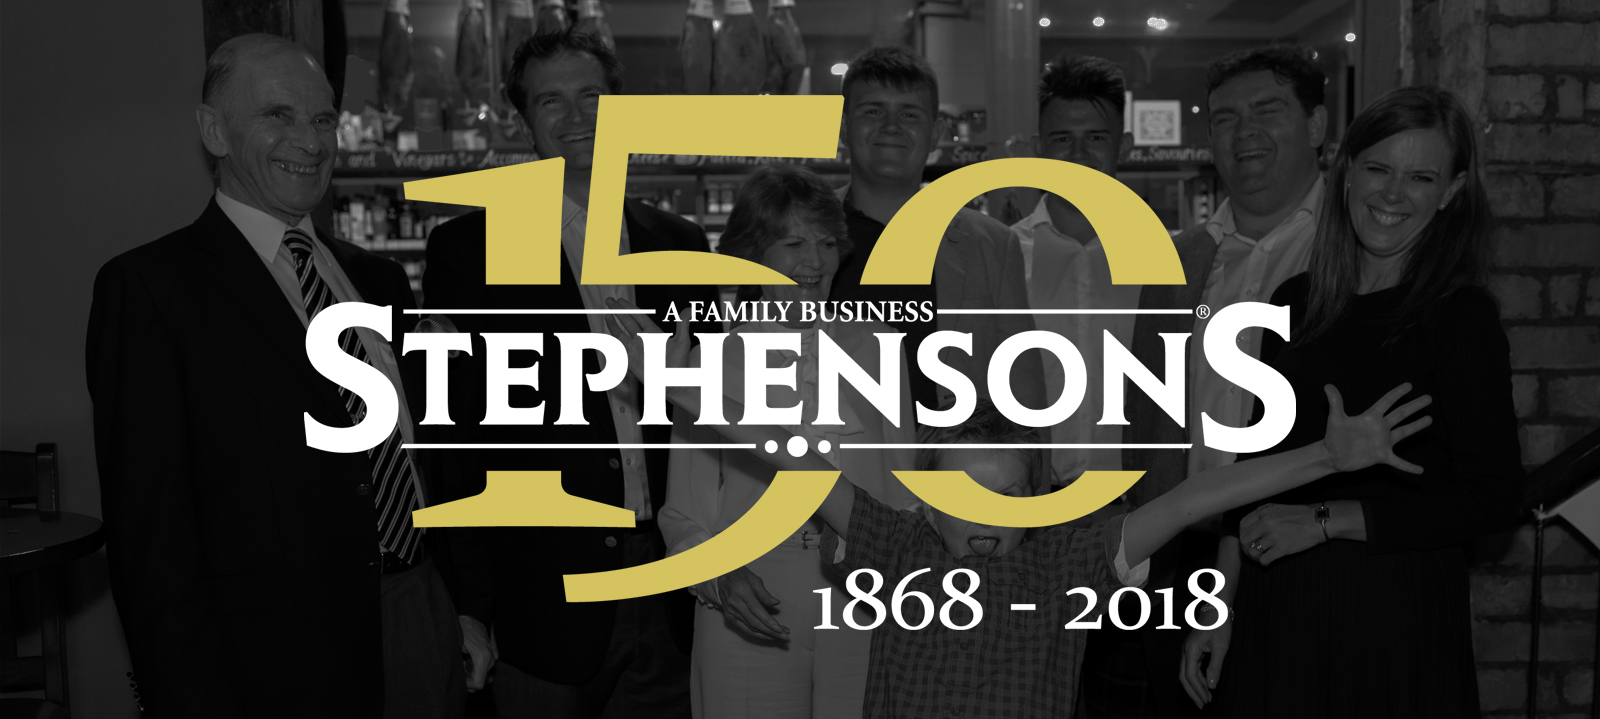 The Stephenson family celebrate the historic 150th anniversary of the company